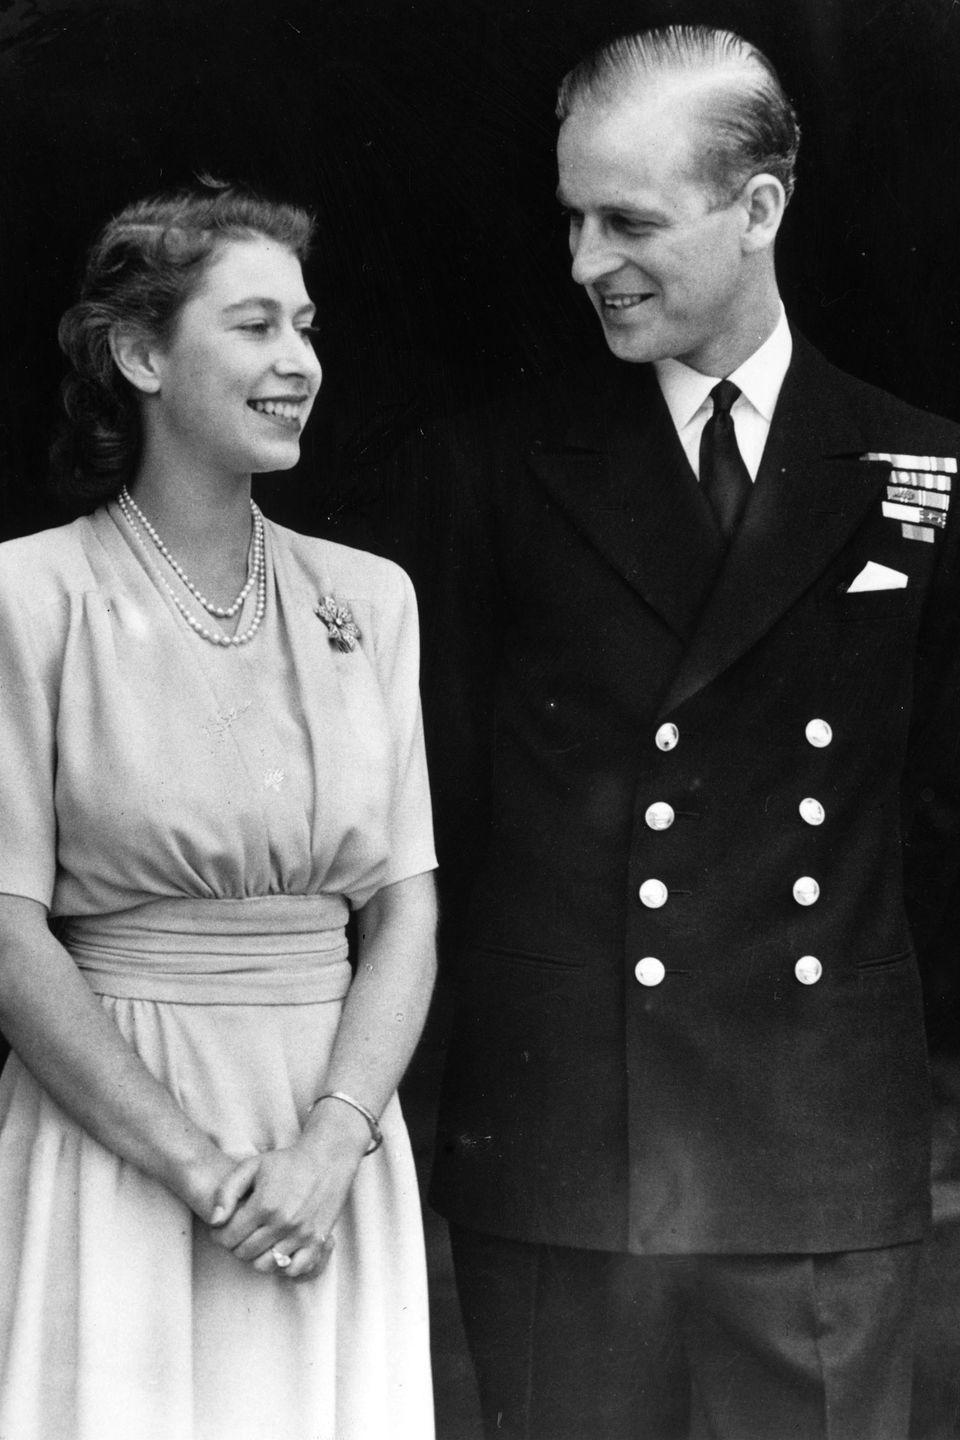 <p>The couple shares a moment together shortly after announcing their engagement at Buckingham Palace in London. The two initially met when they were very young at the wedding of Phillip's cousin and Elizabeth's uncle. It wasn't until years later at the Royal Naval College in Dartmouth when they really began their romantic relationship. </p>